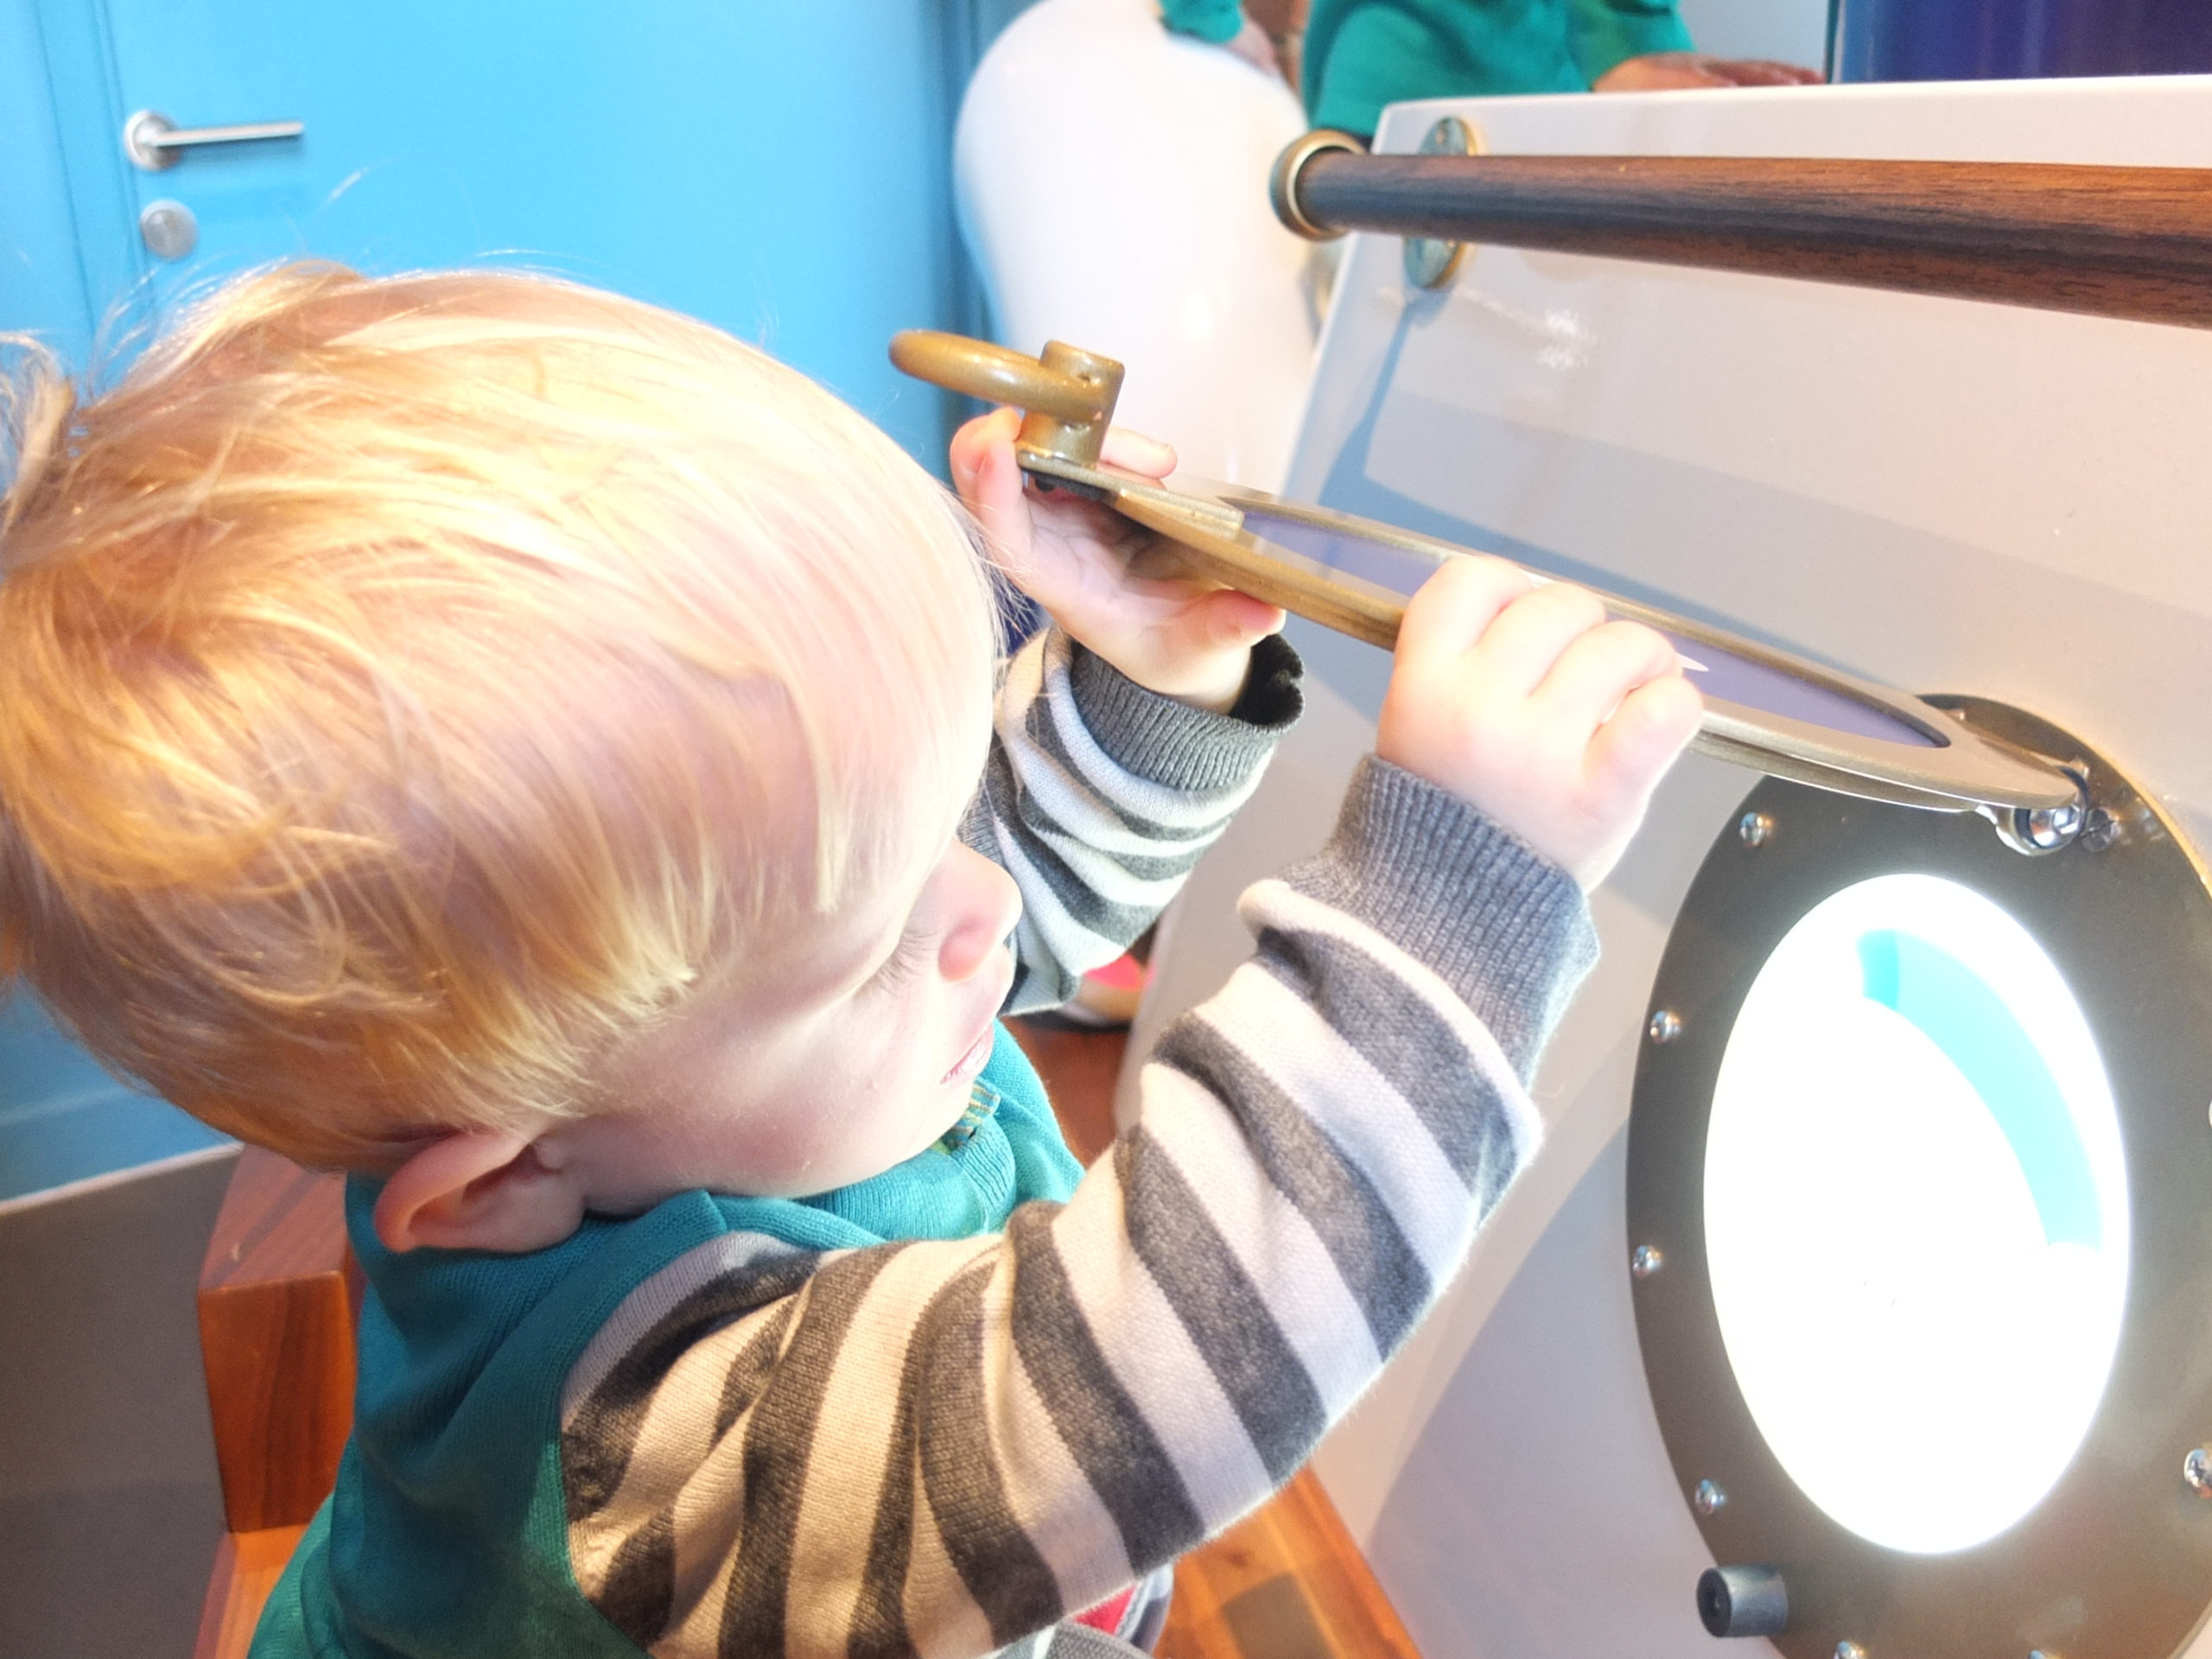 A toddler stands and lift a porthole window up.